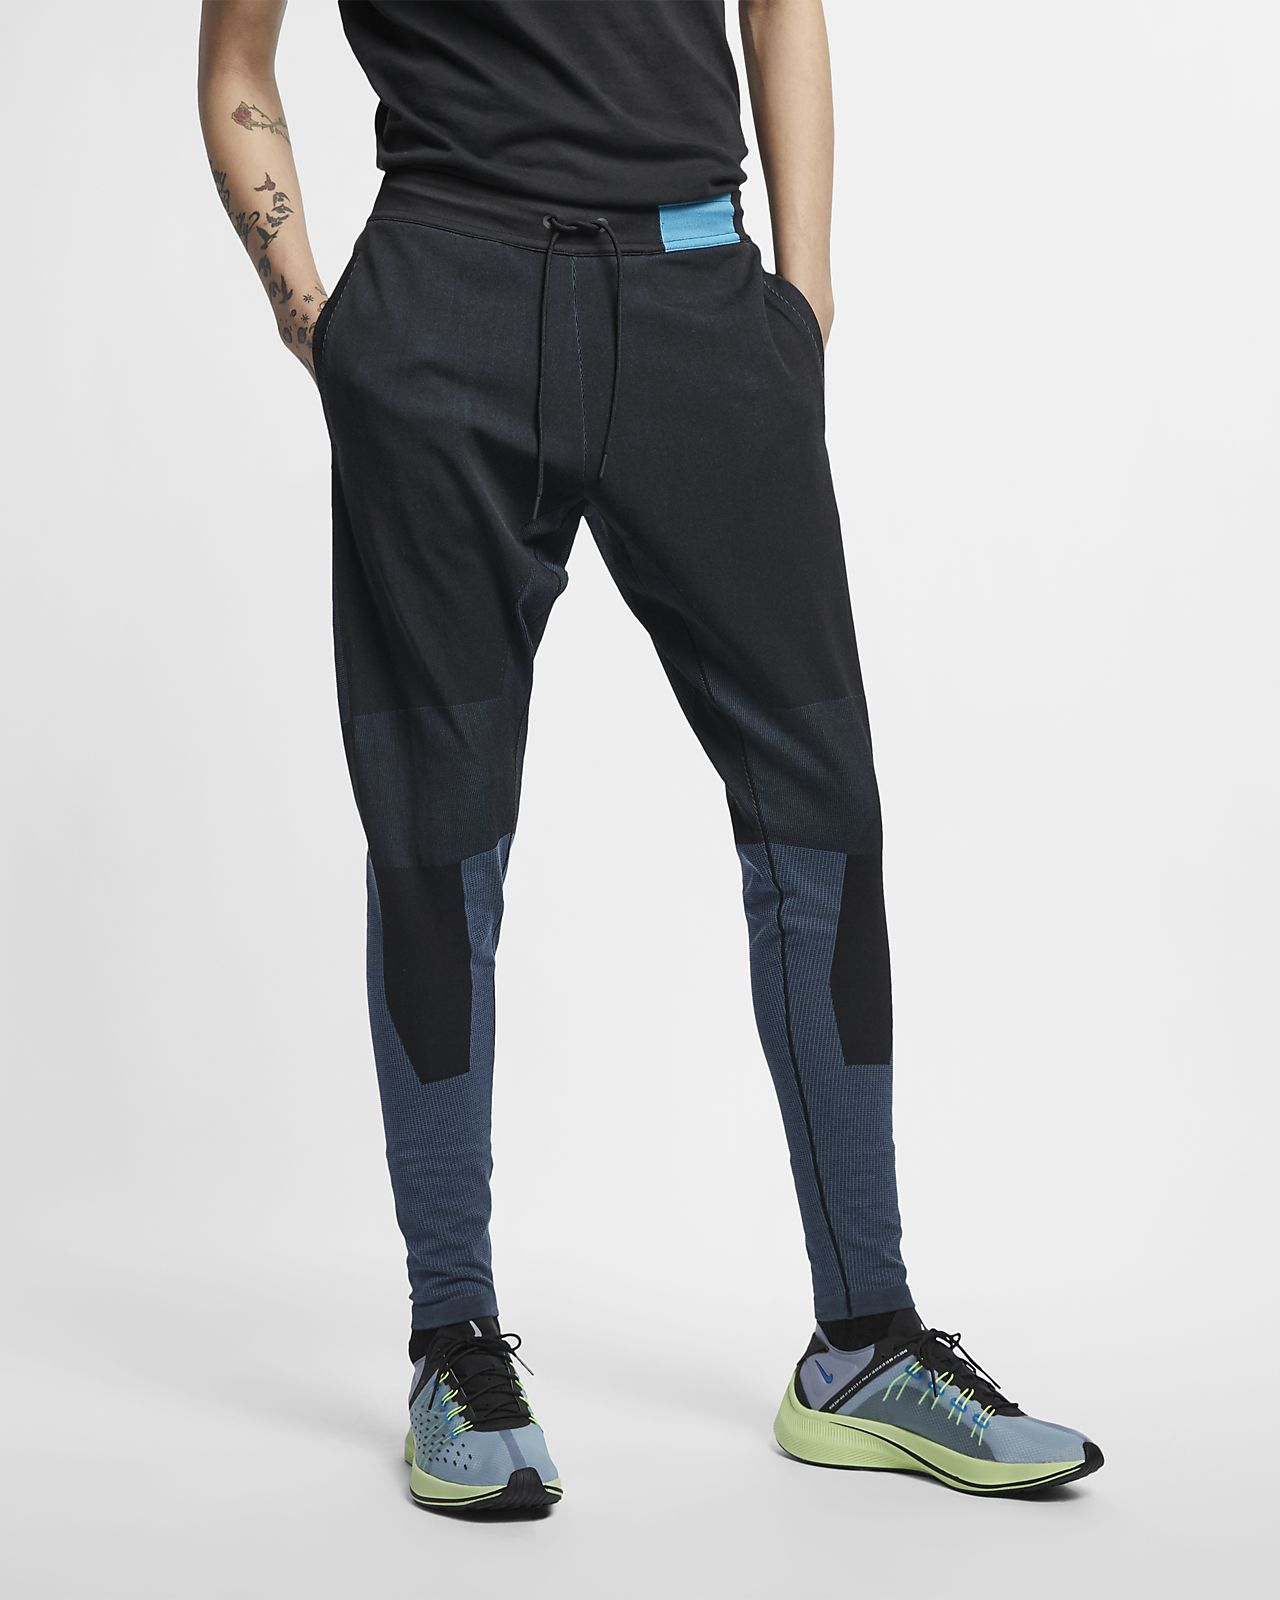 Nike Sportswear Tech Pack Men's Knit Pants